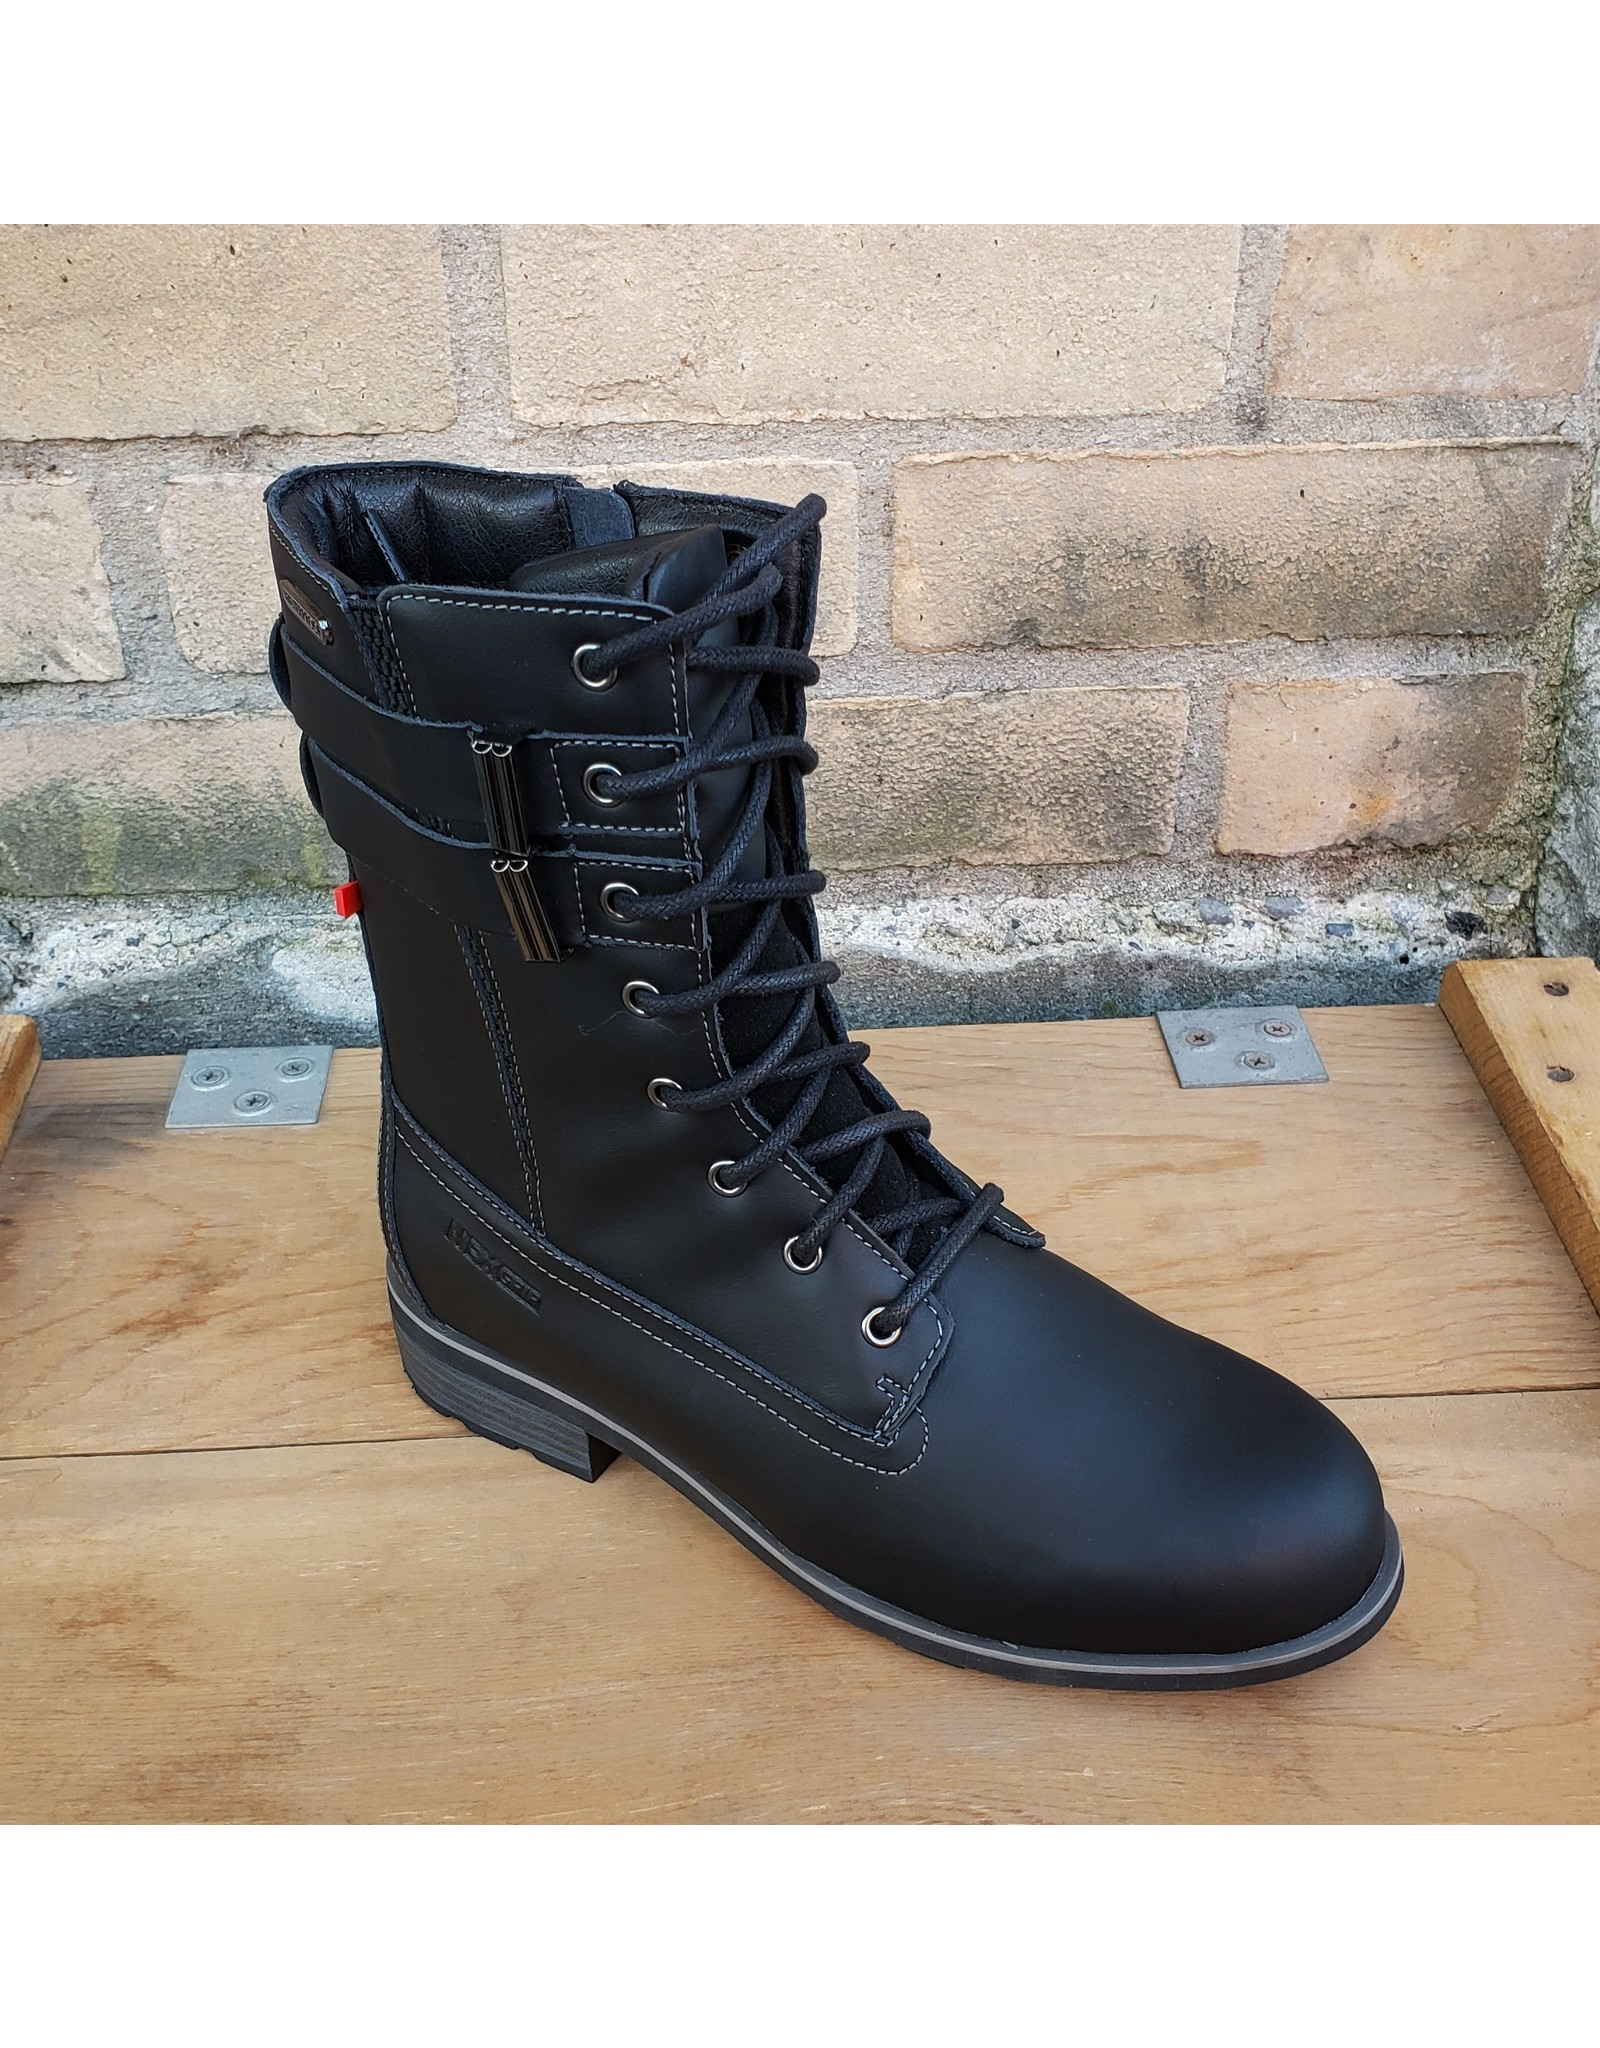 NEXGRIP CANADA ICE EMMA WINTER BOOT